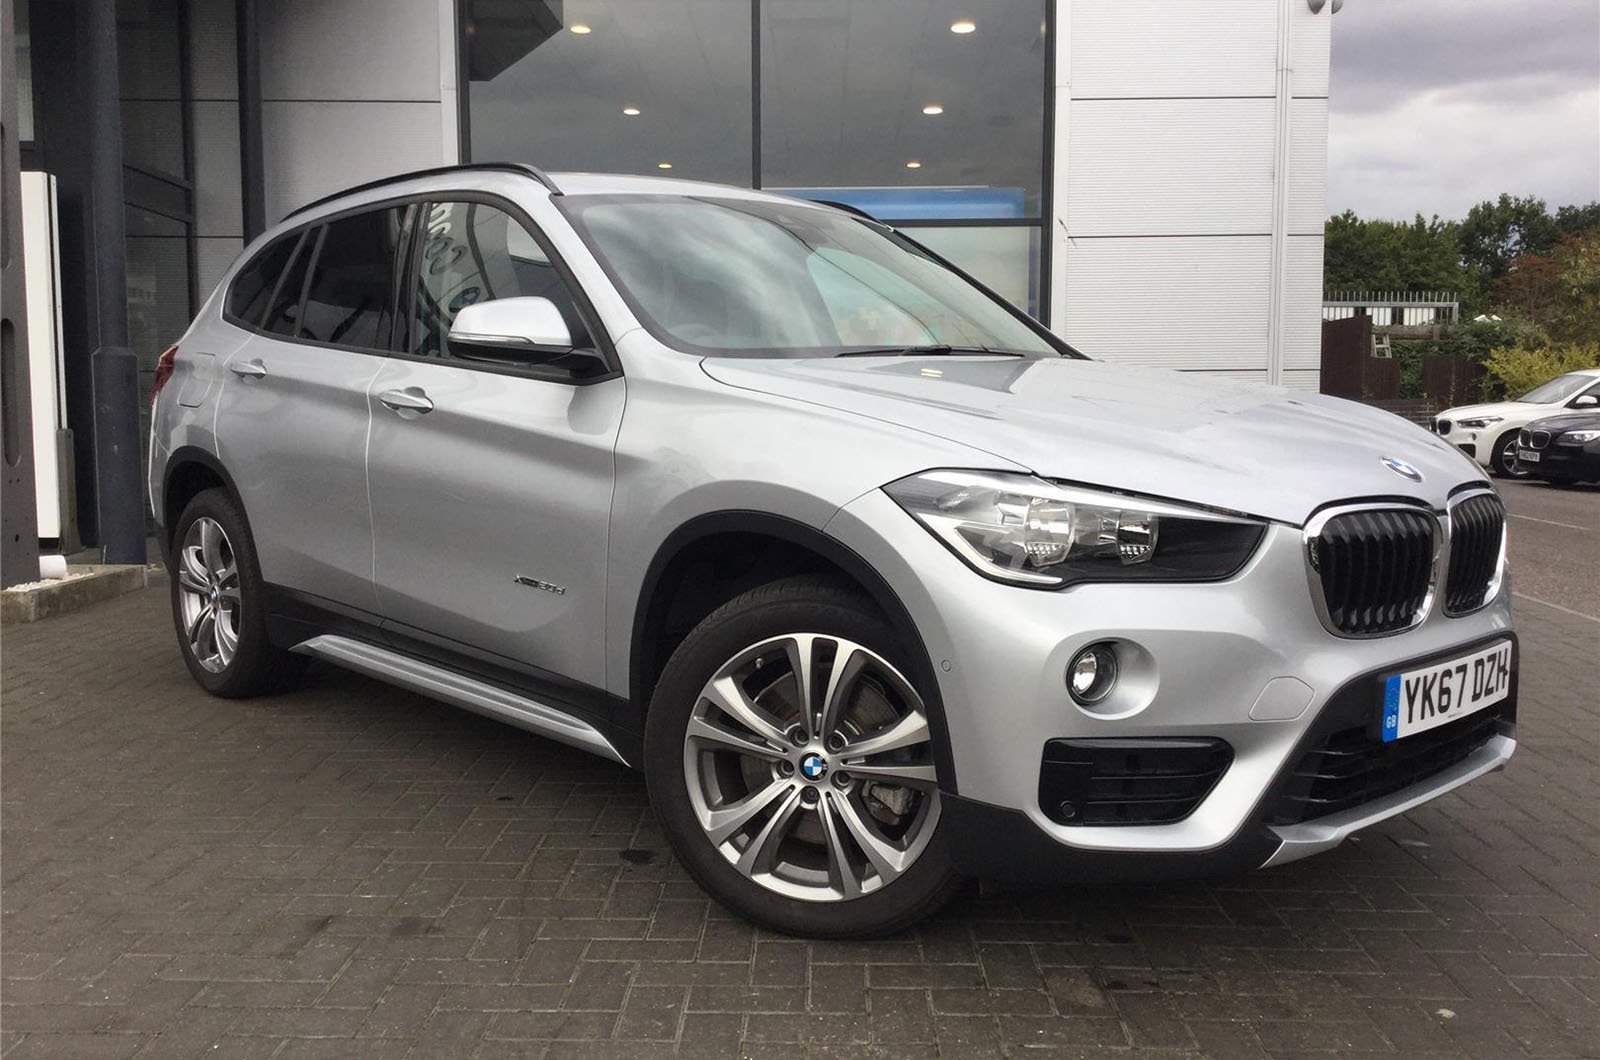 BMW X1 mystery shopper